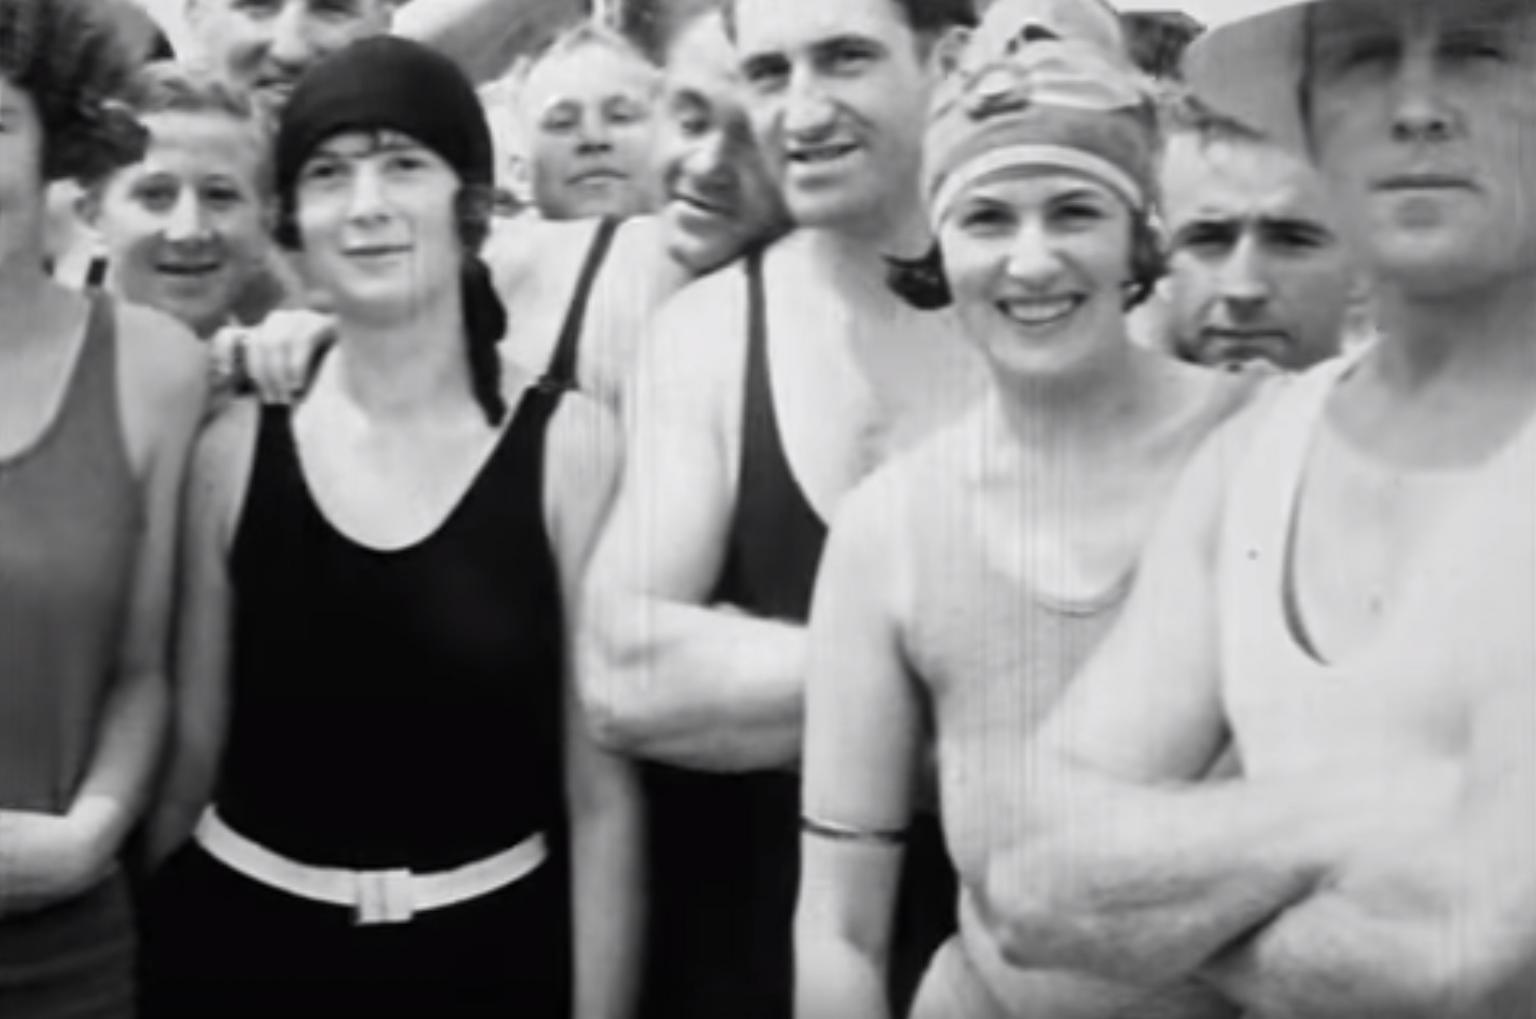 A group of swimmers at Bondi Beach in 1926, looking at the camera